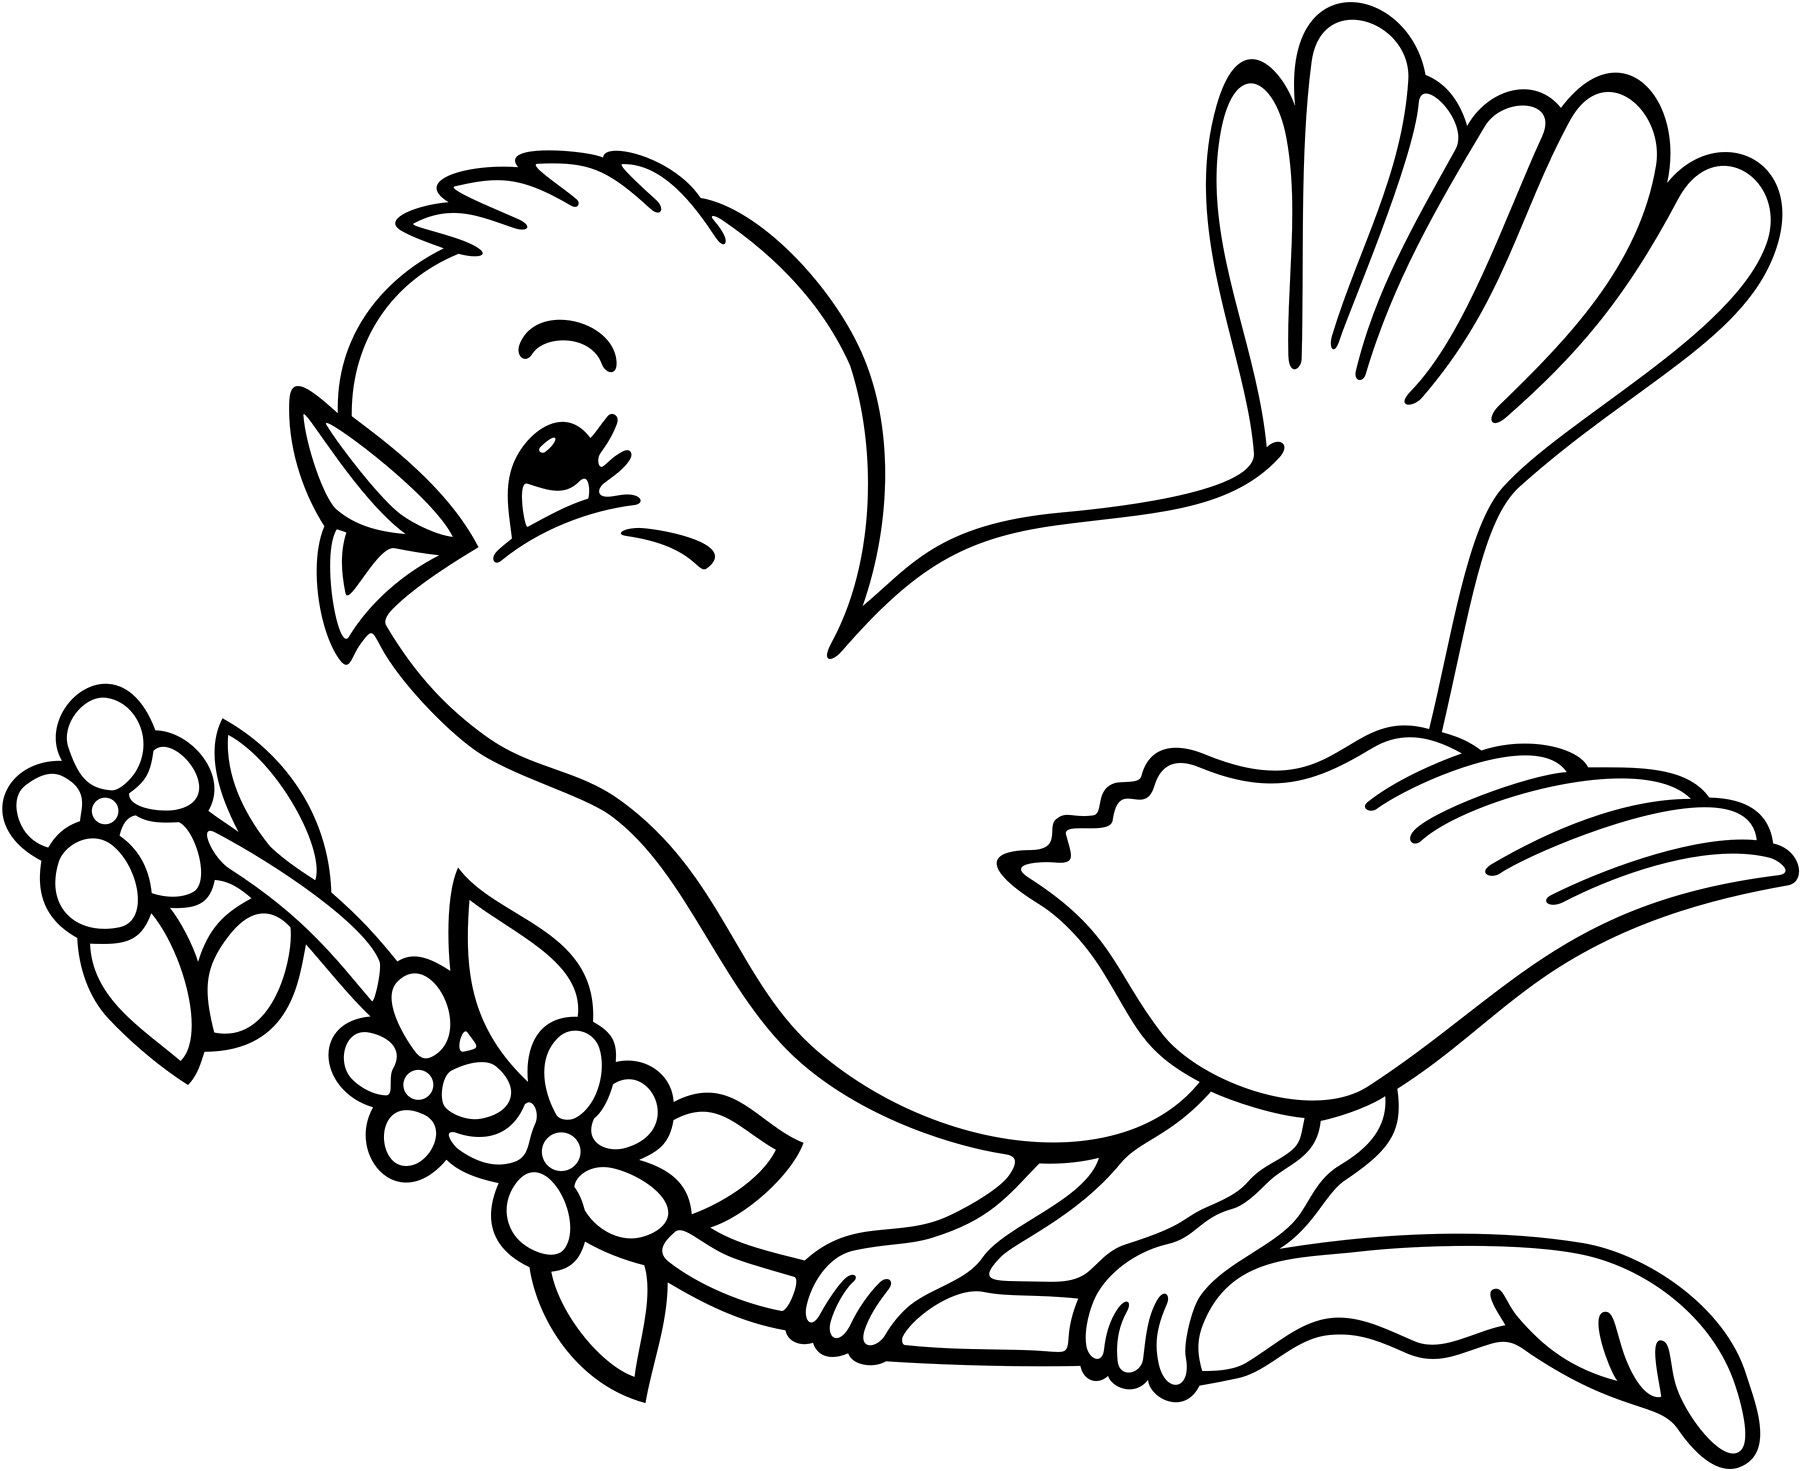 kids coloring pages birds - photo#25